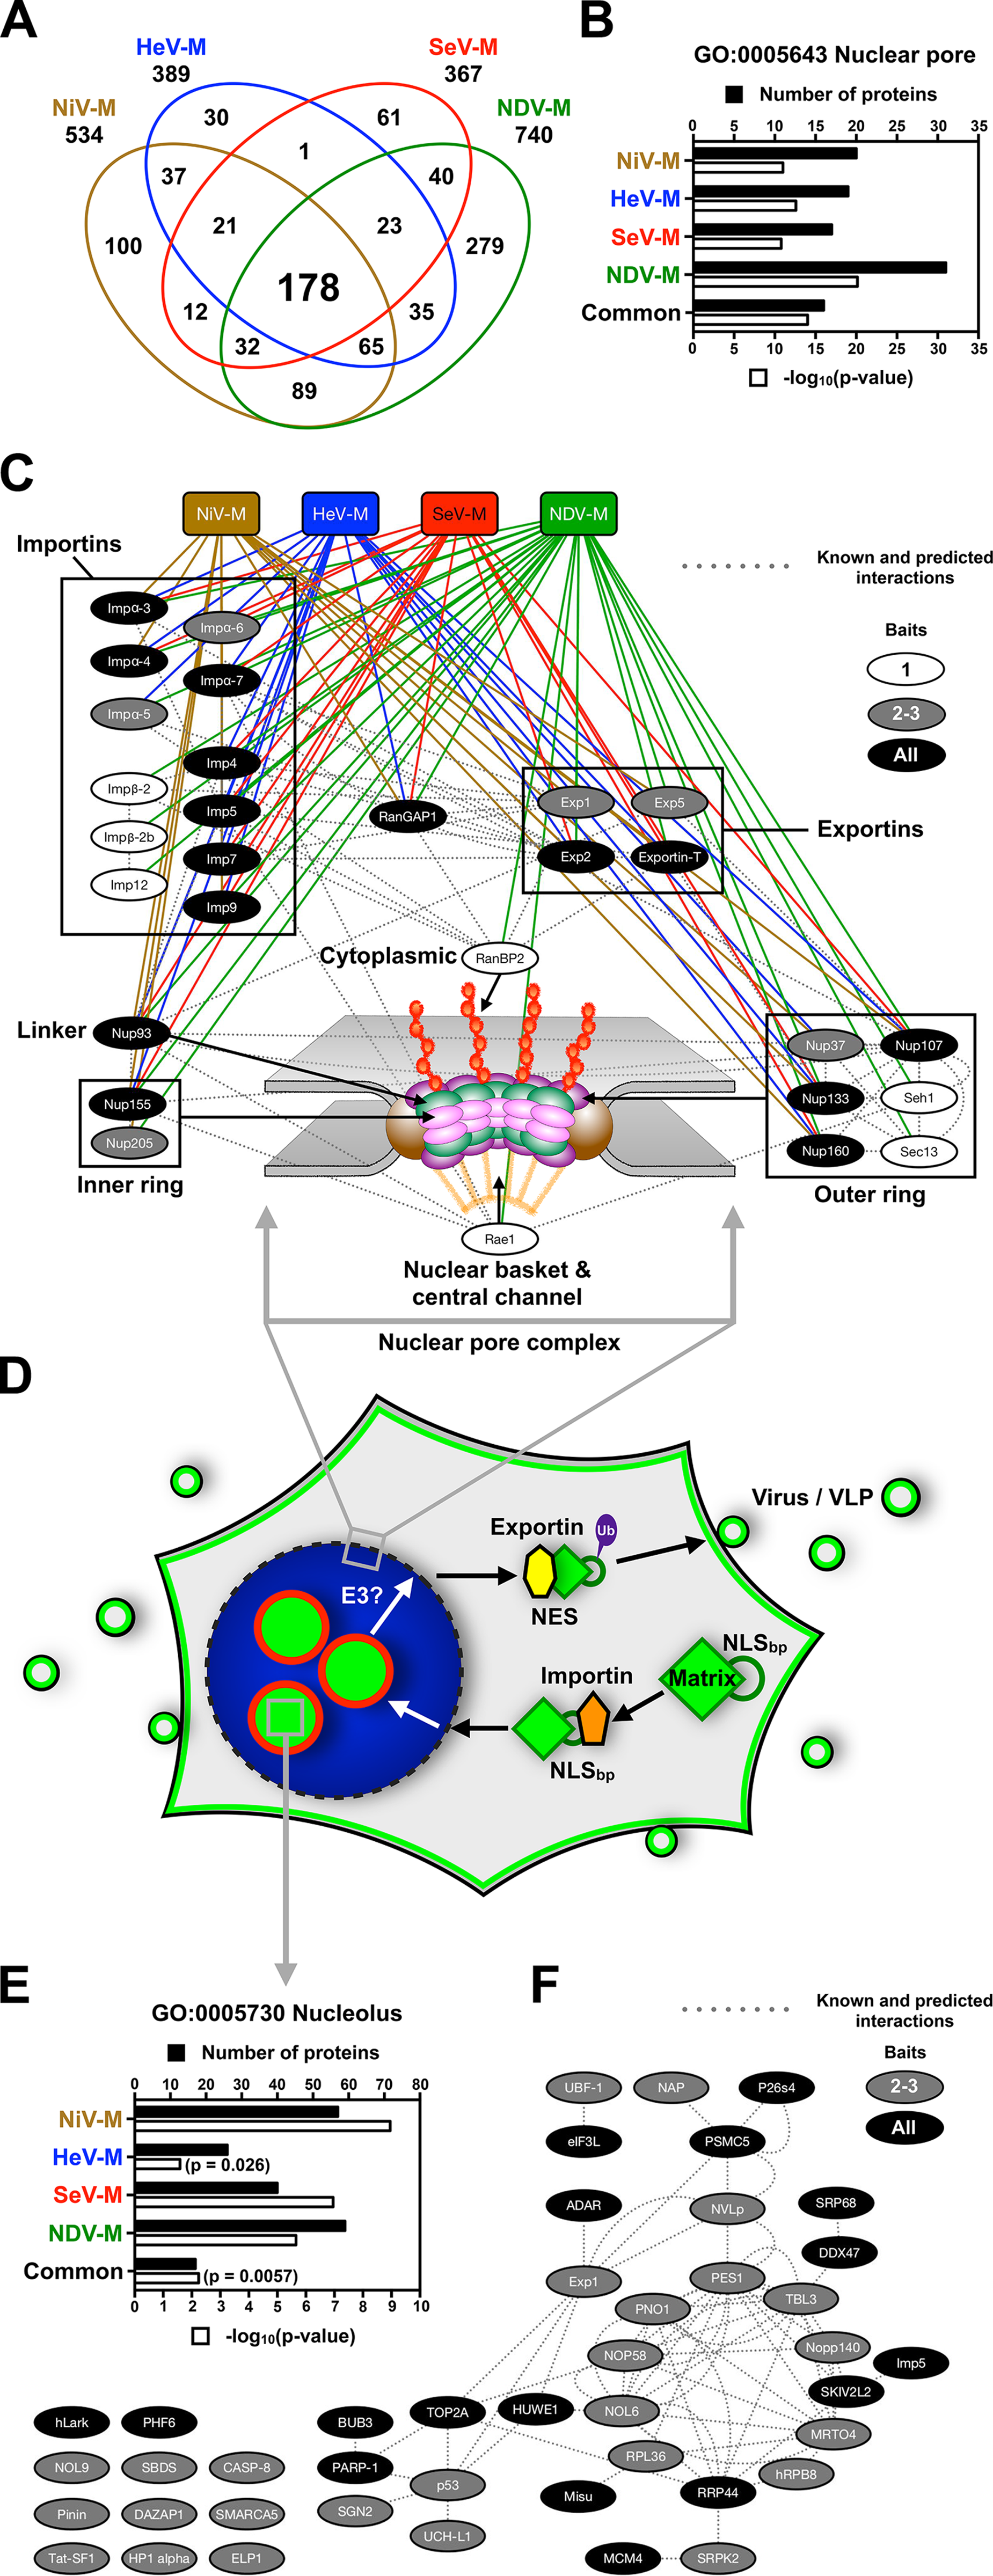 Identification of nuclear pore complex proteins, nuclear transport receptors and nucleolar proteins that interact with <i>Paramyxovirinae</i> matrix proteins.